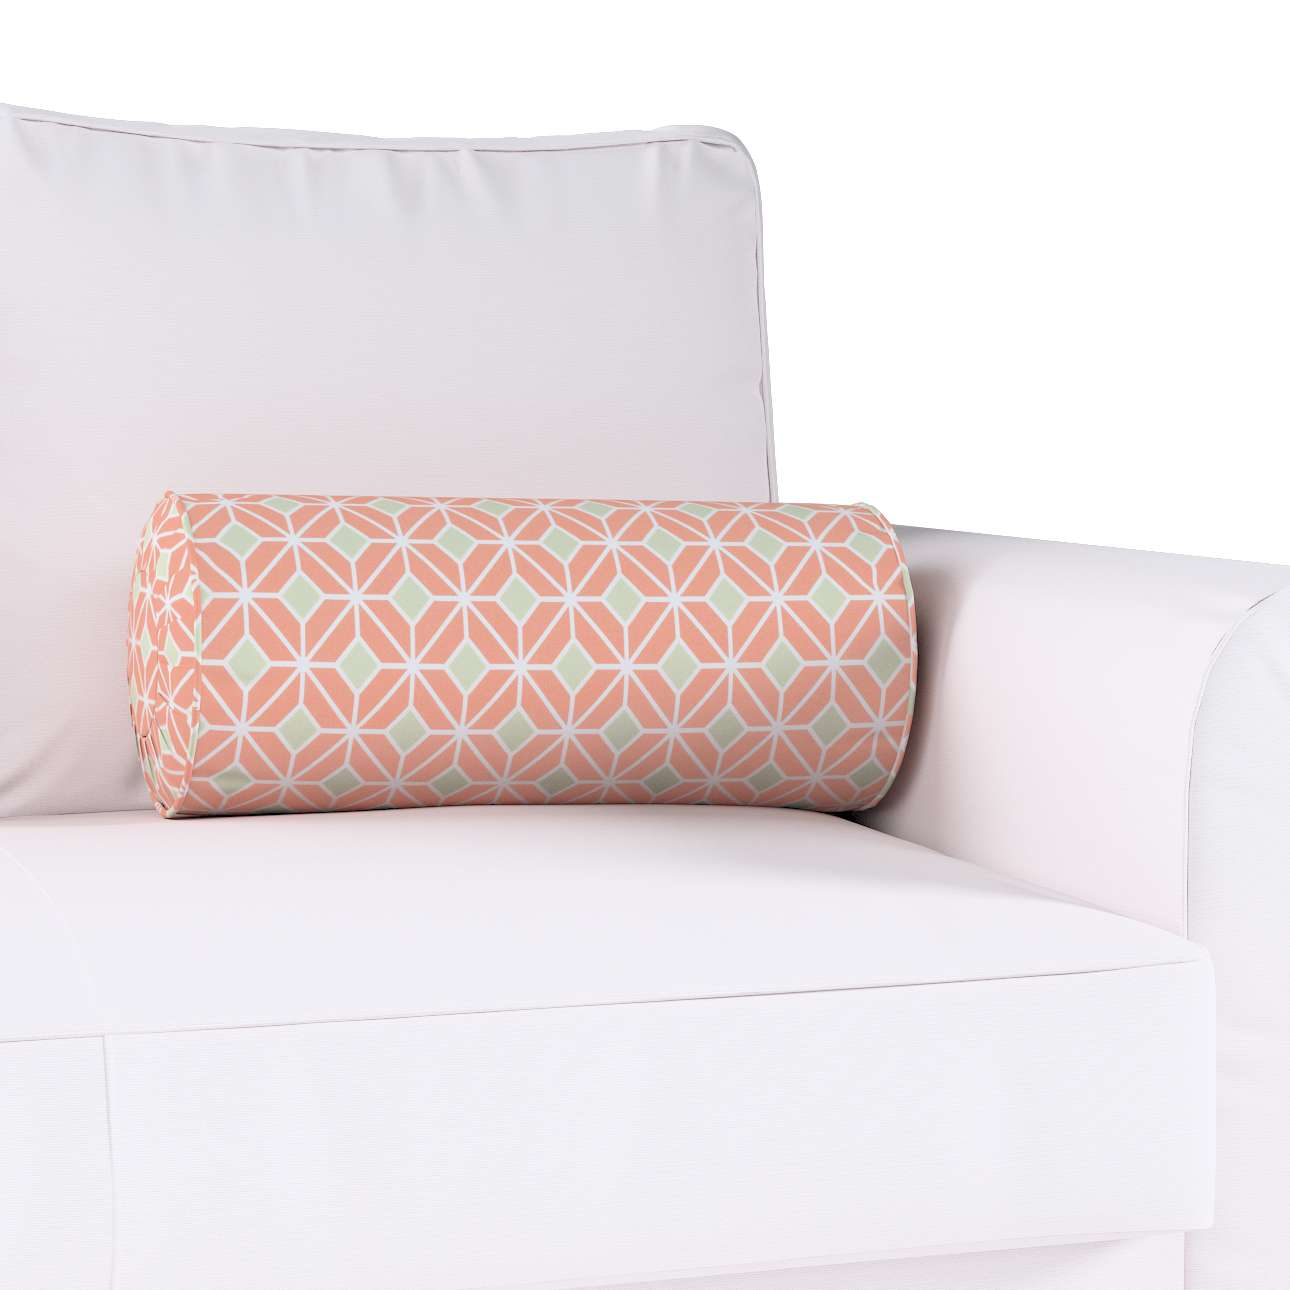 Bolster cushion with pleats in collection Geometric, fabric: 141-48